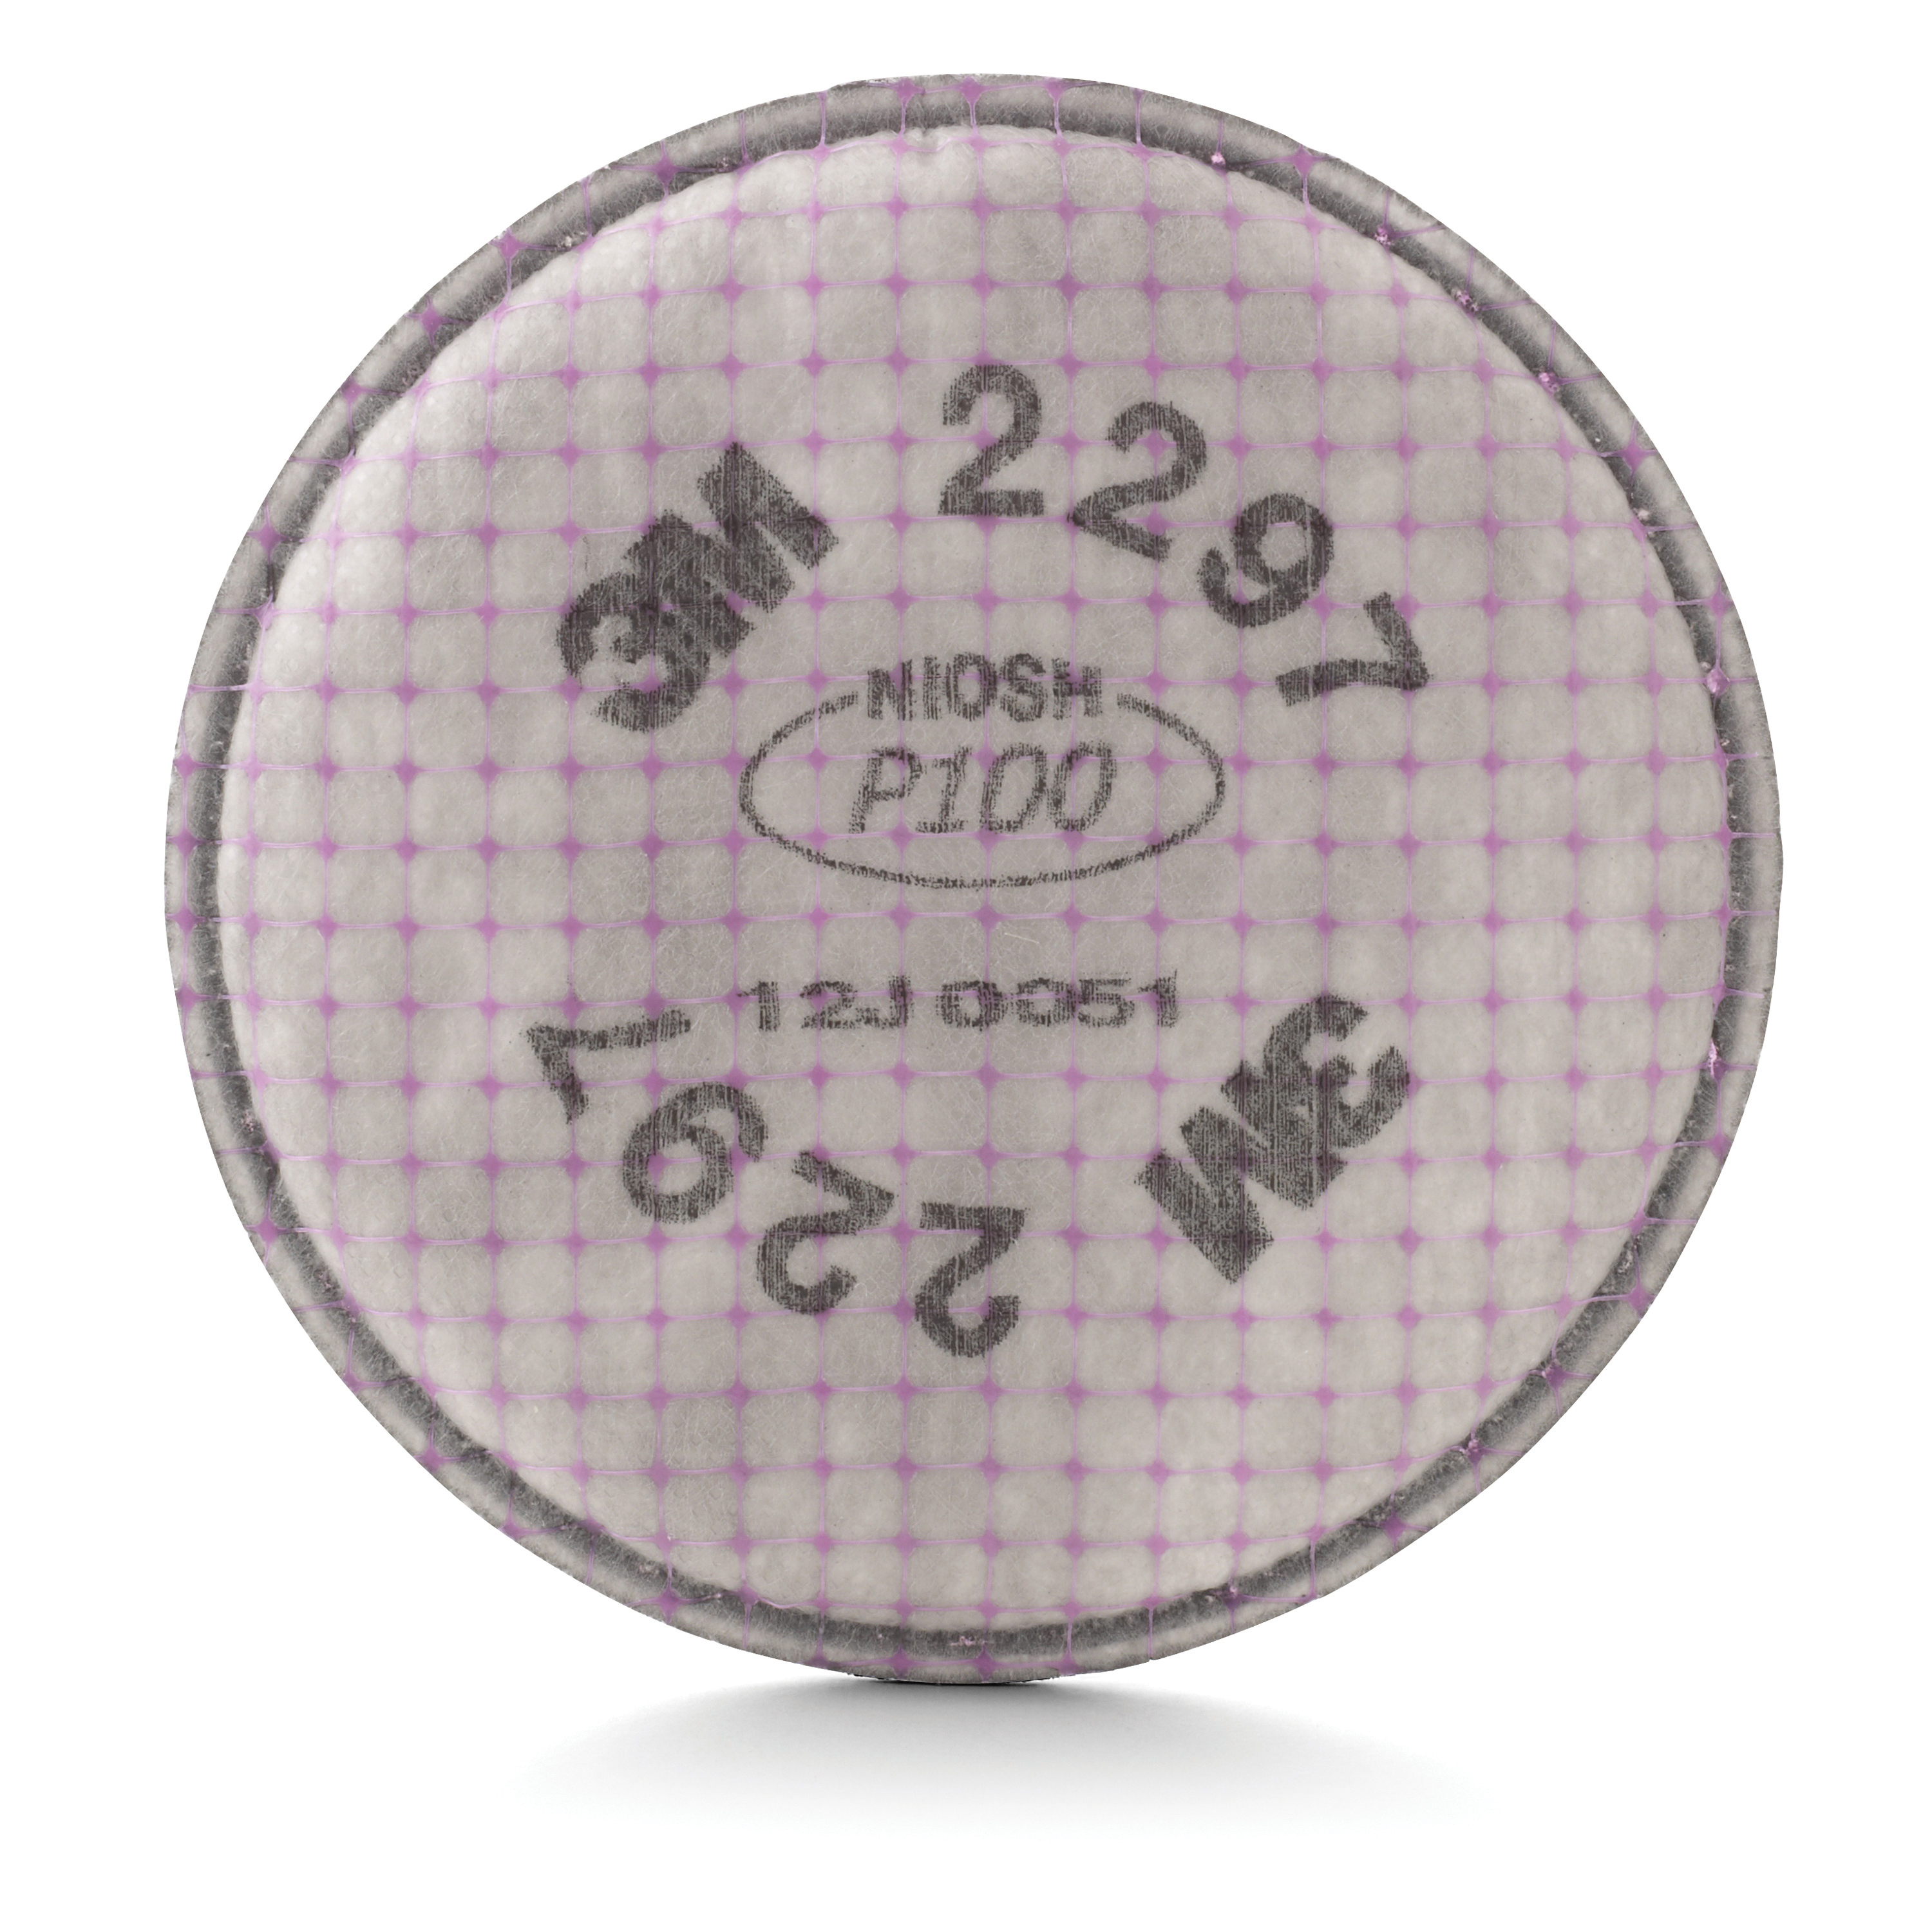 3M™ 051131-17172 2297 Particulate Filter, For Use With 3M™ 5000 and 6000 Series Reusable Respirators, P100 Filter Class, 0.9997 Filter Efficiency, Bayonet Connection, Magenta/Gray, Resists: Non-Oil Based Particulates and Nuisance Organic Vapors